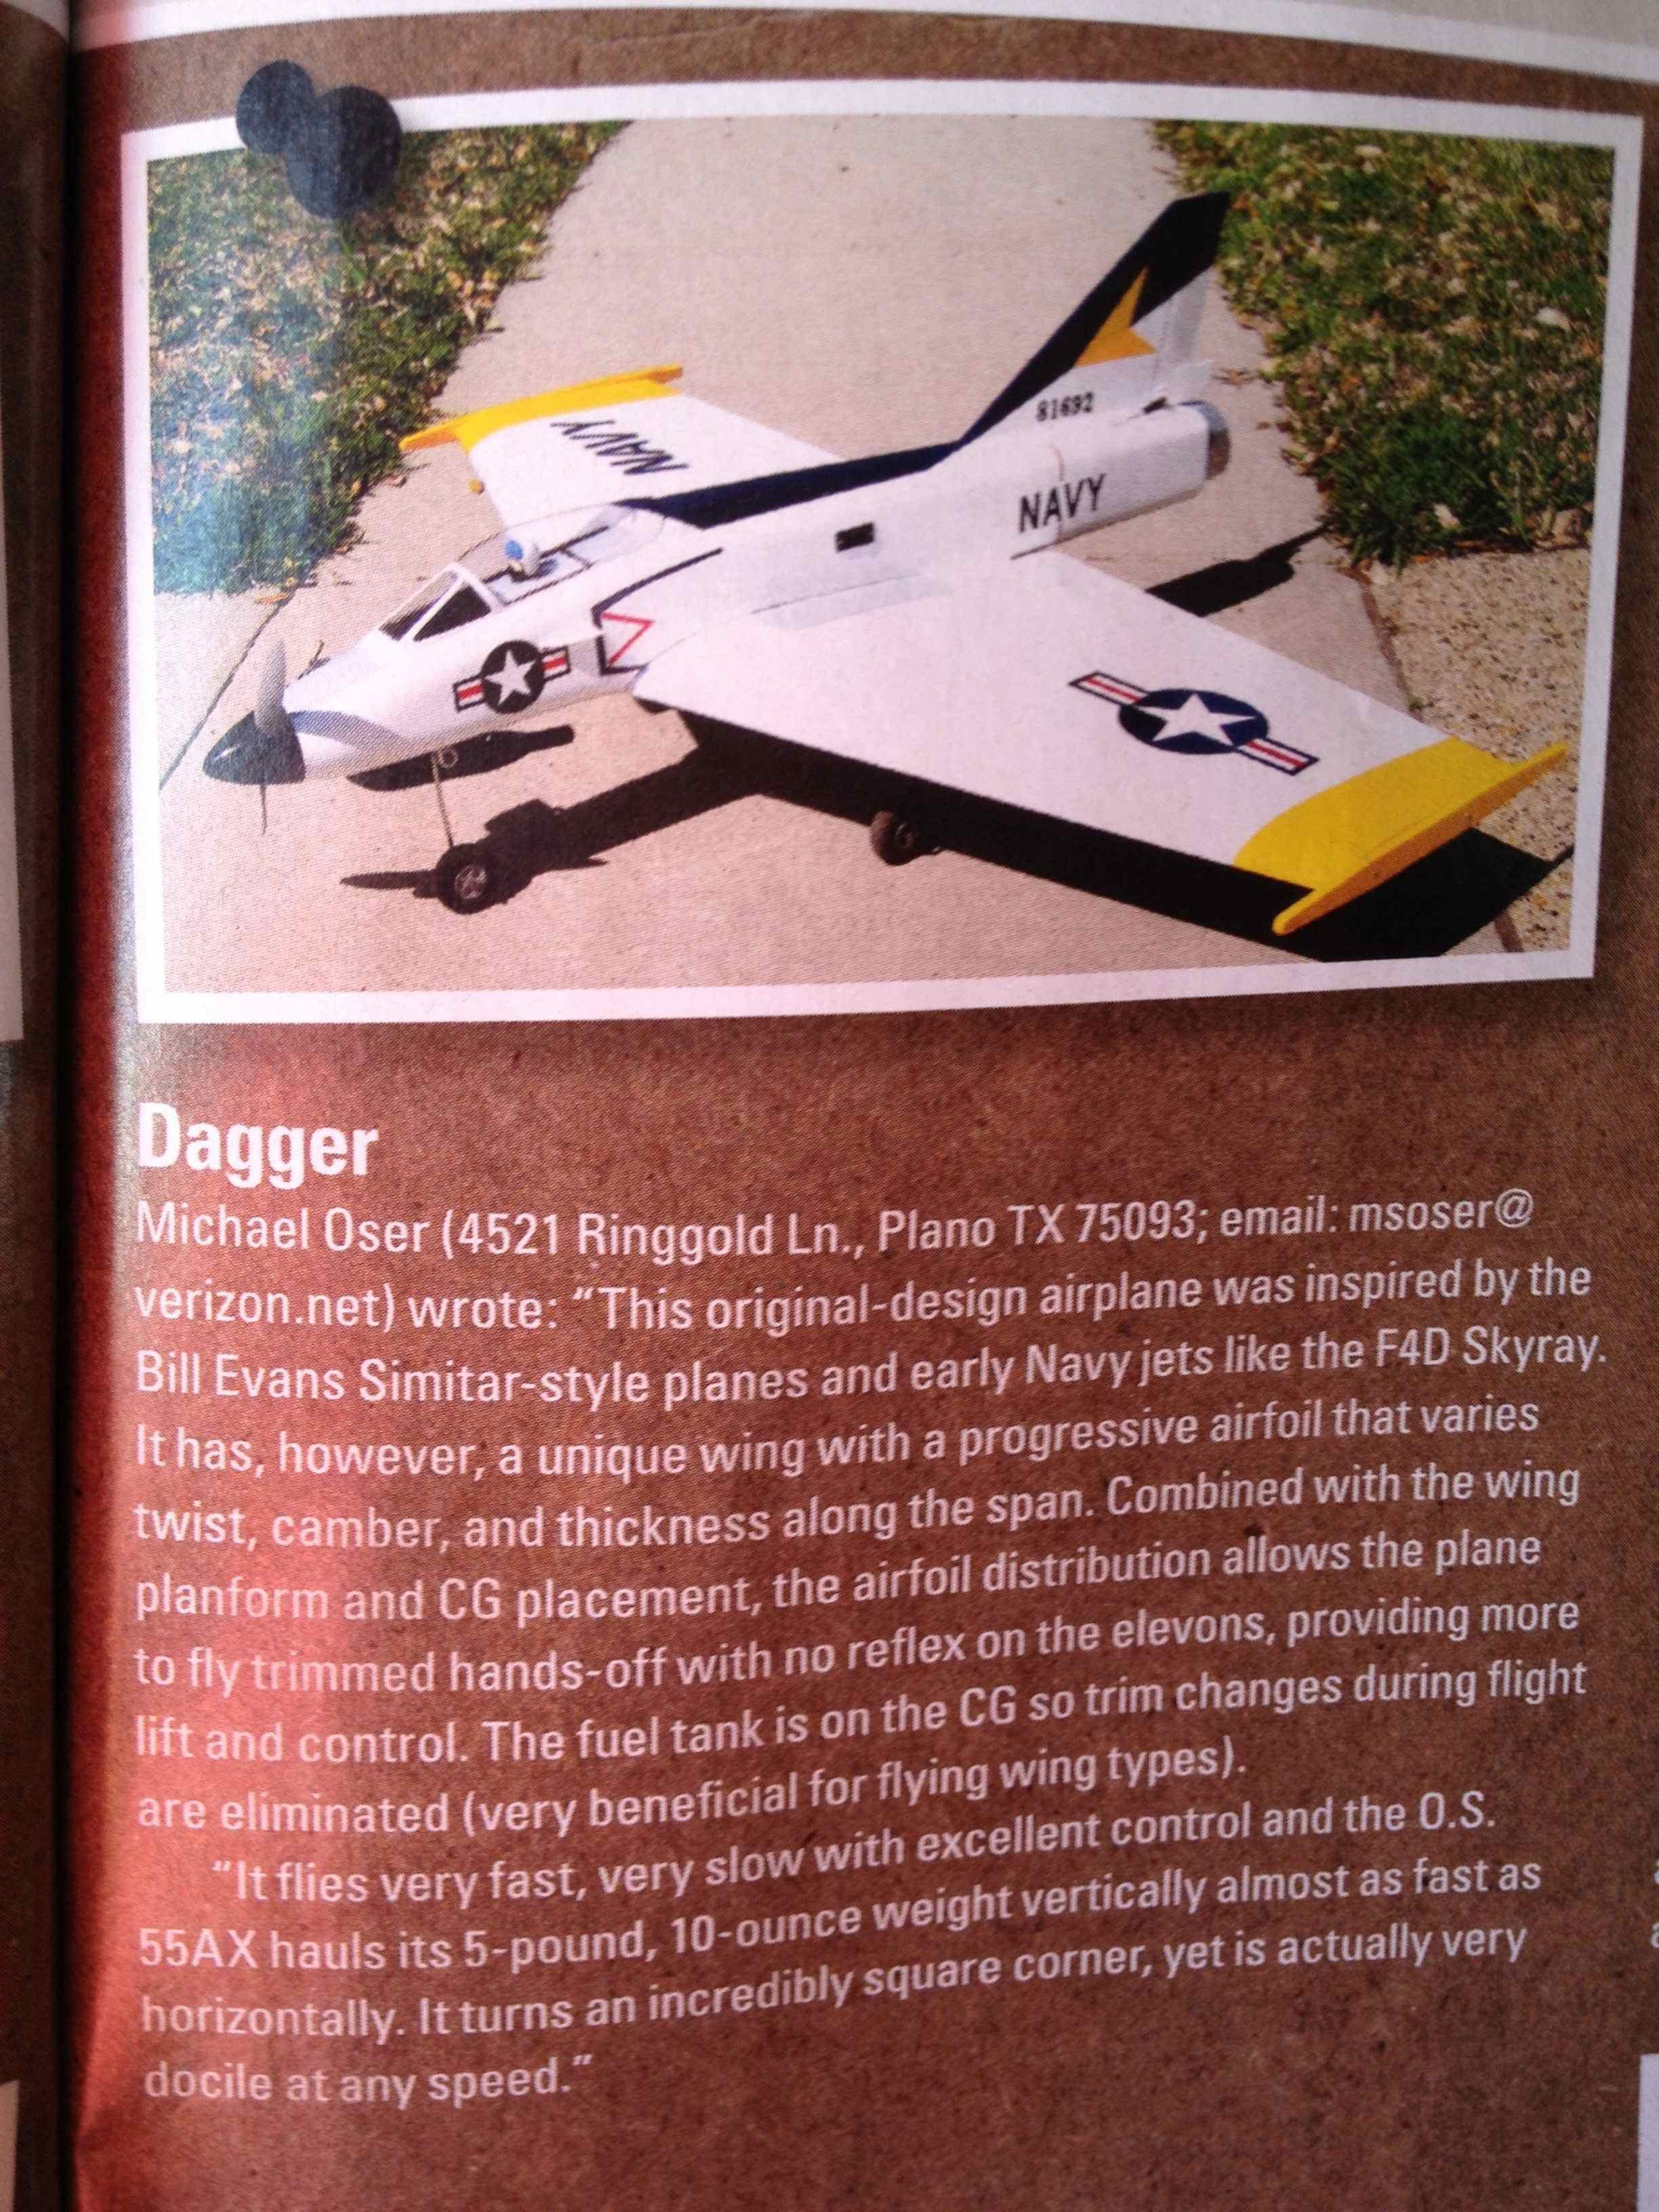 Click image for larger version  Name:Dagger APR 2012 MA 2.jpg Views:1013 Size:612.7 KB ID:2064216